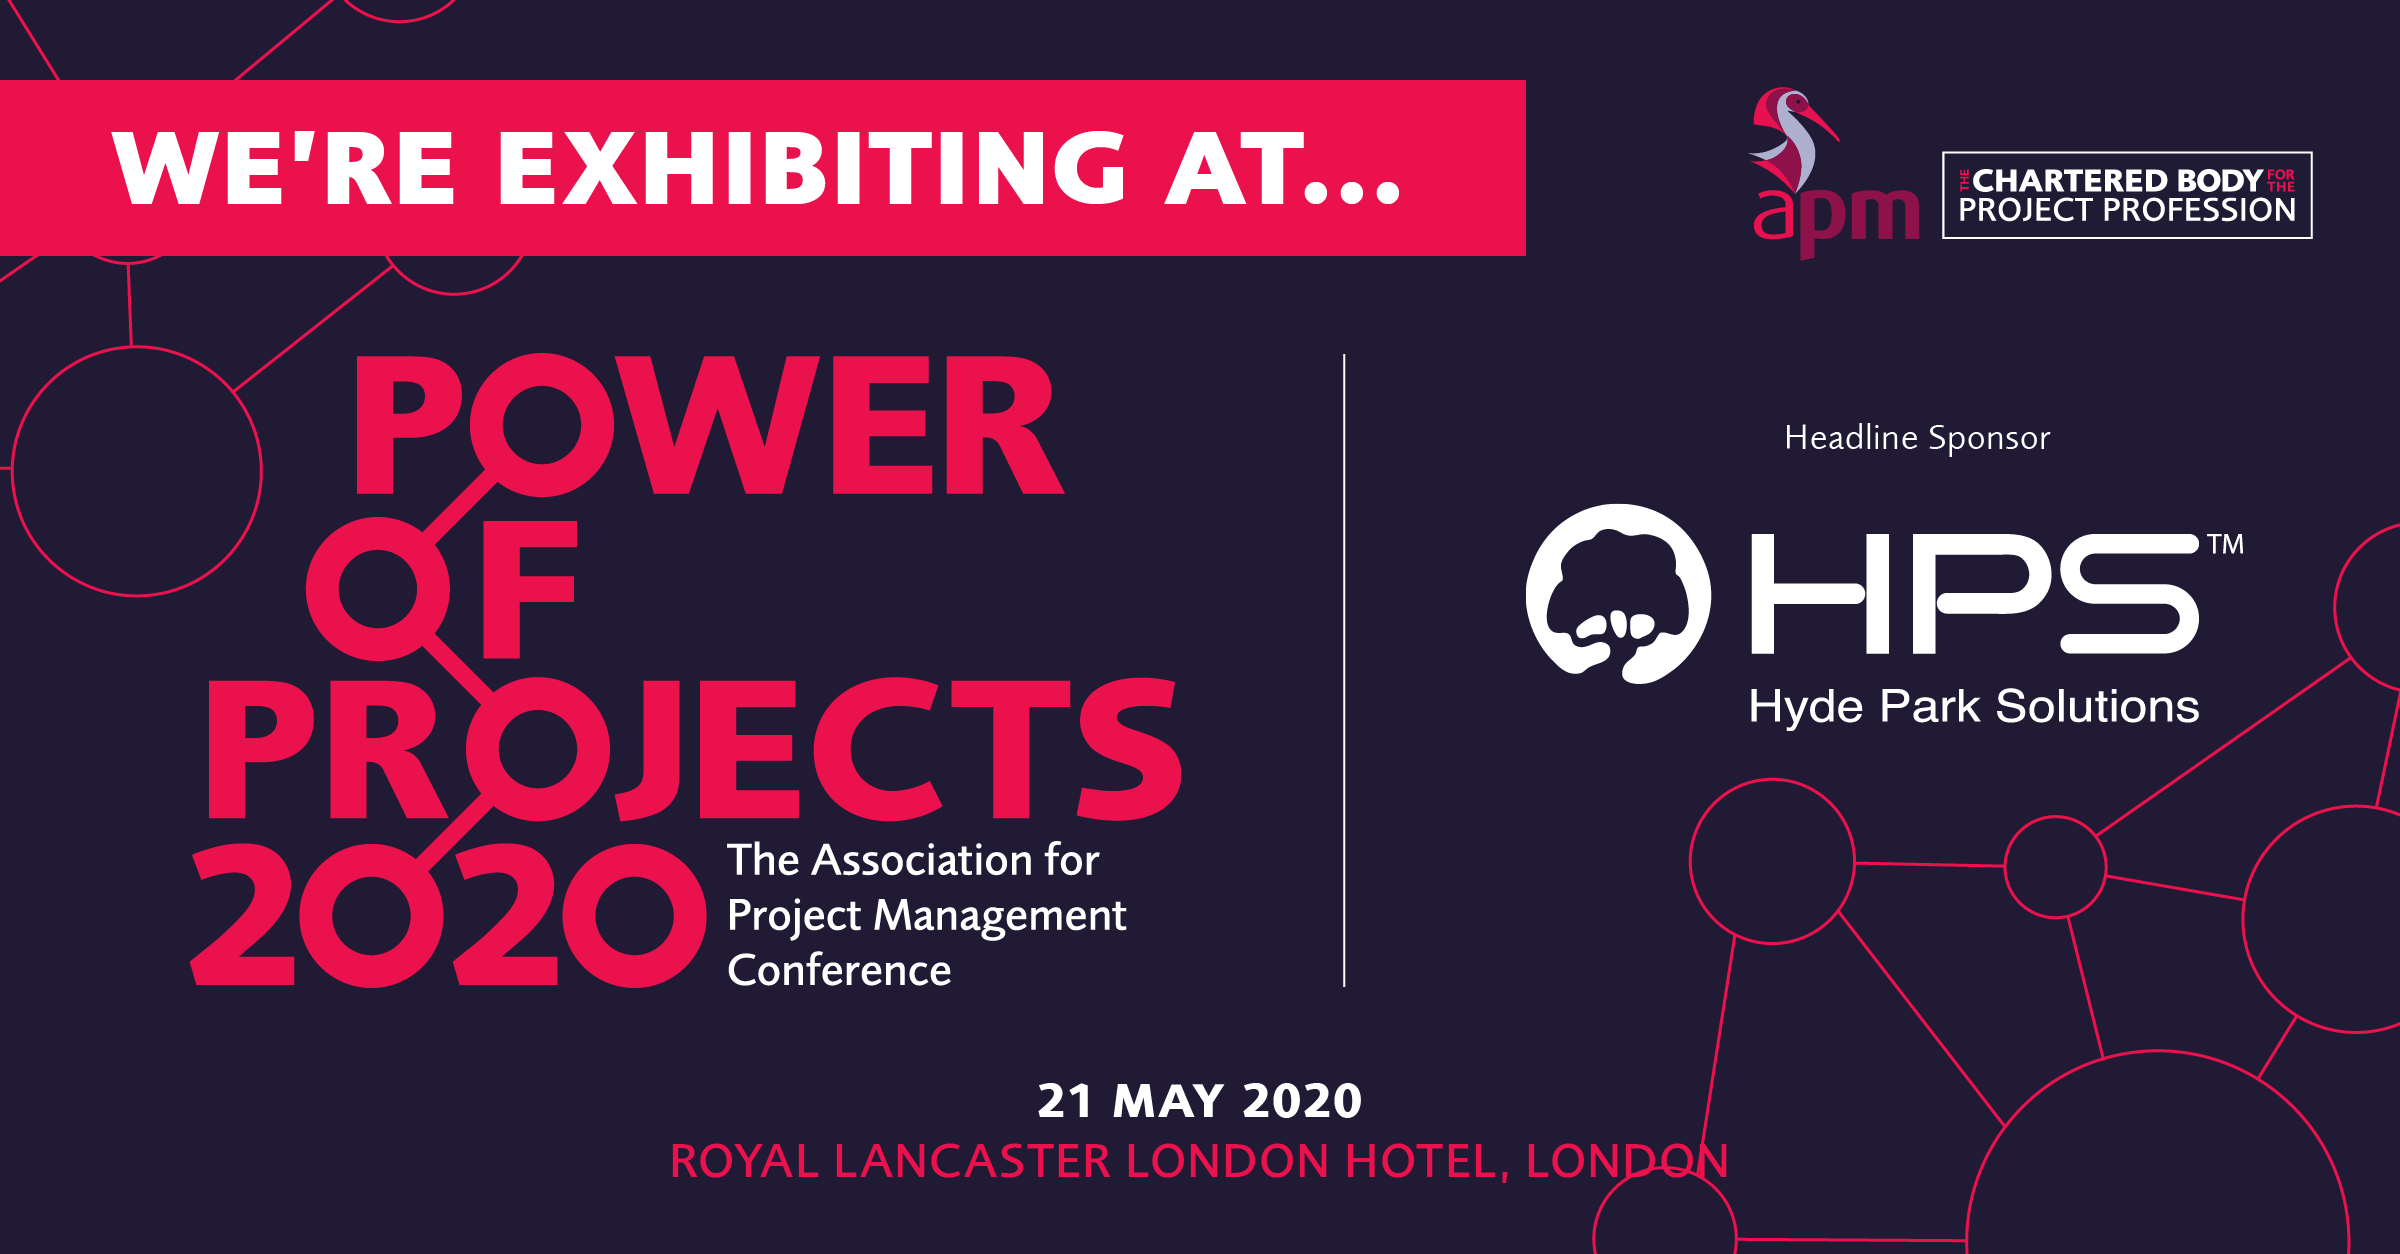 DADA Exhibiting At Association Of Project Management (APM) Power Of Projects Conference